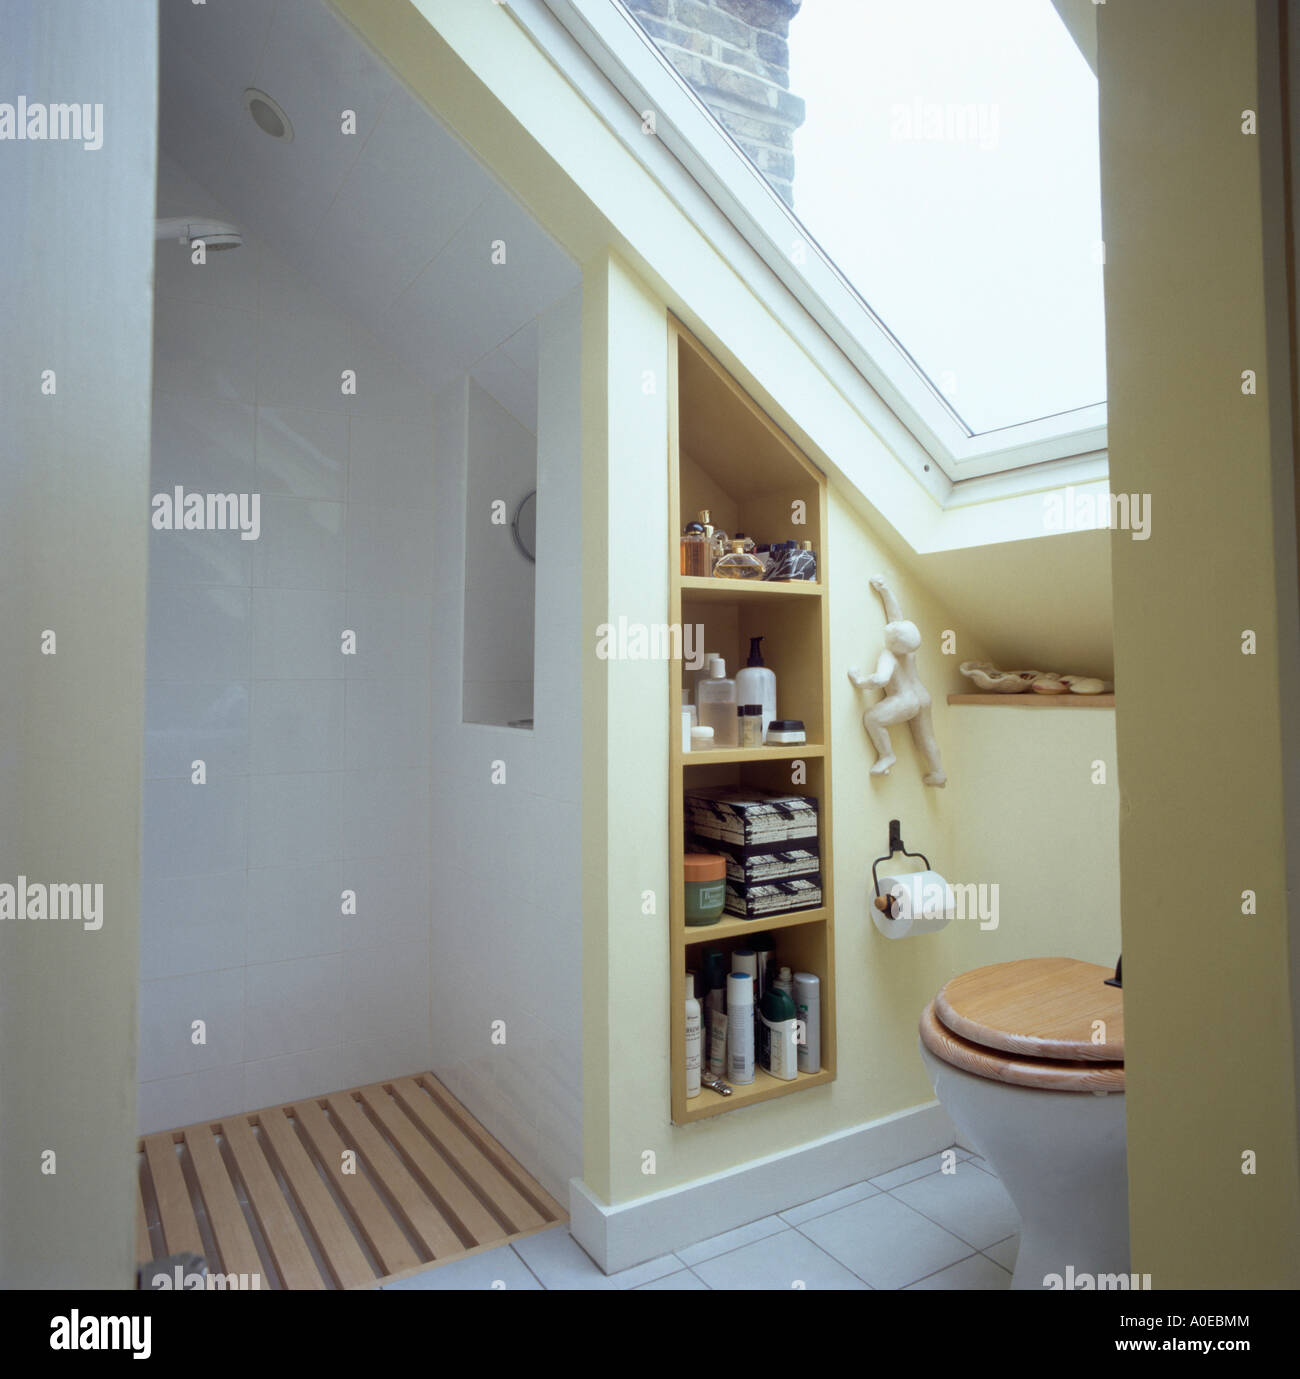 Shower And Shelves In Modern White Attic Bathroom With